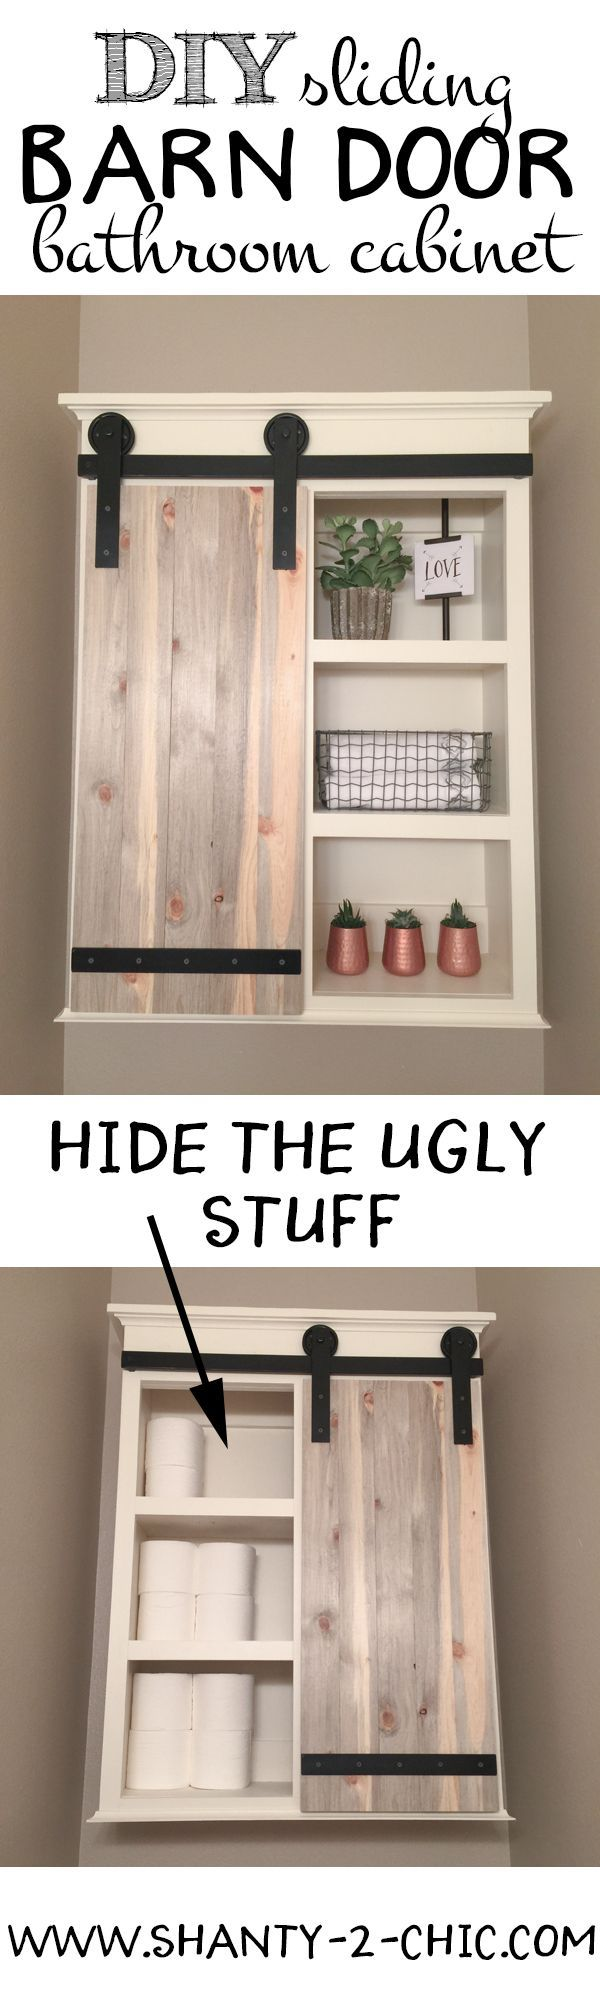 Diy Sliding Barn Door Bathroom Cabinet Southern Home Inspiration